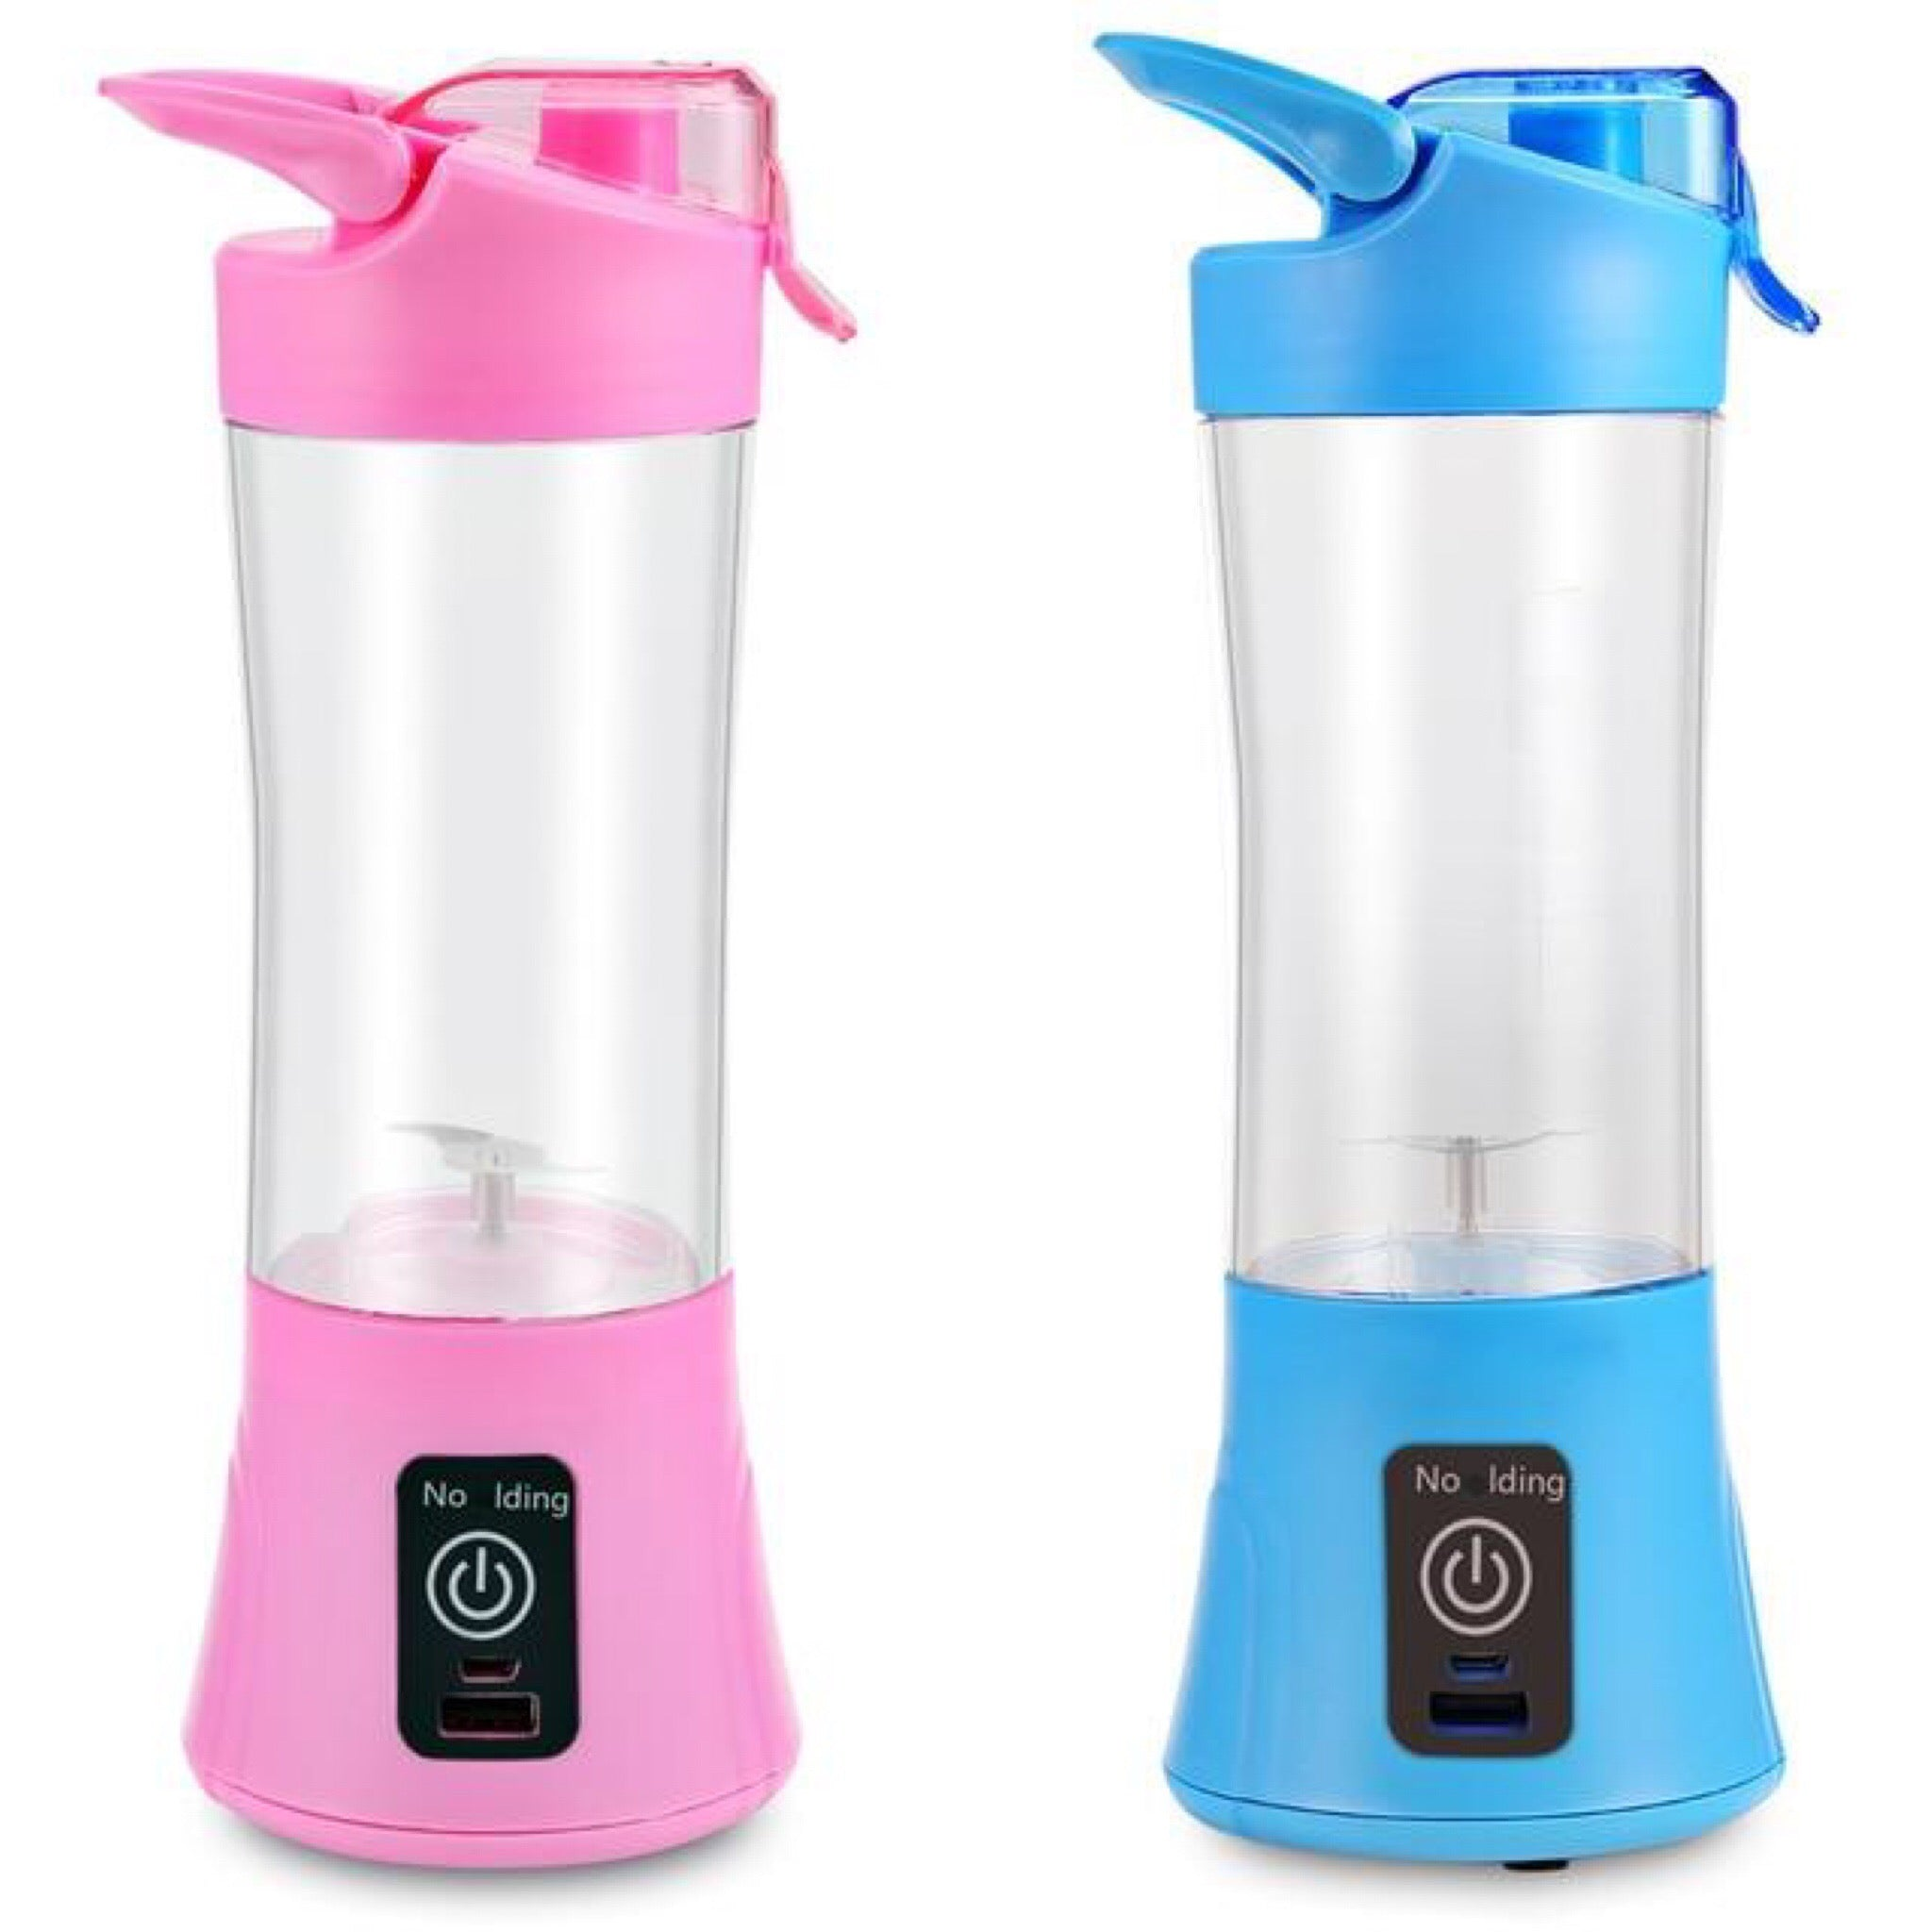 USB Portable Blender - Bundle of 2